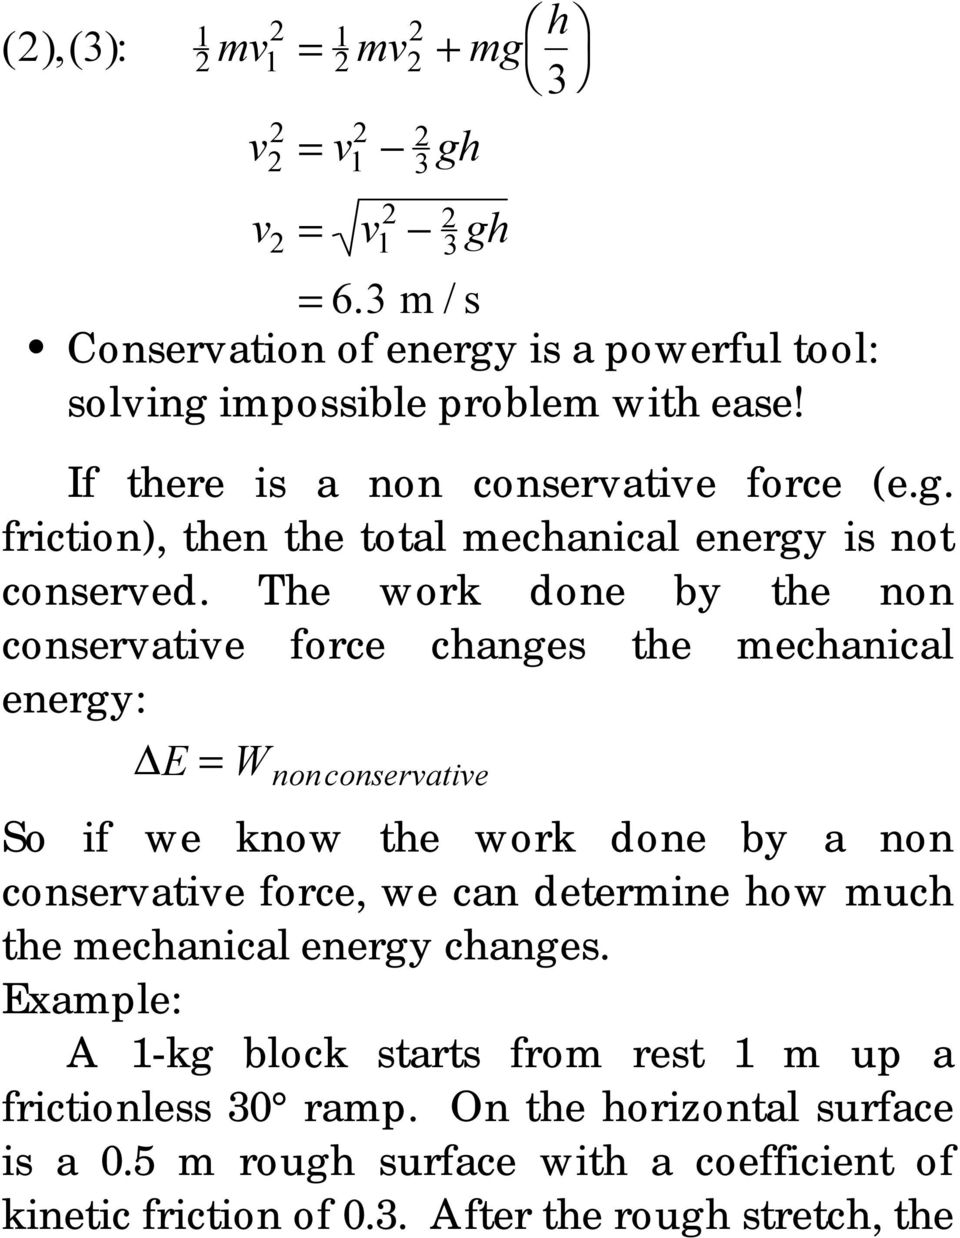 The work done by the non conservative force changes the mechanical energy: E = W nonconservative So if we know the work done by a non conservative force, we can determine